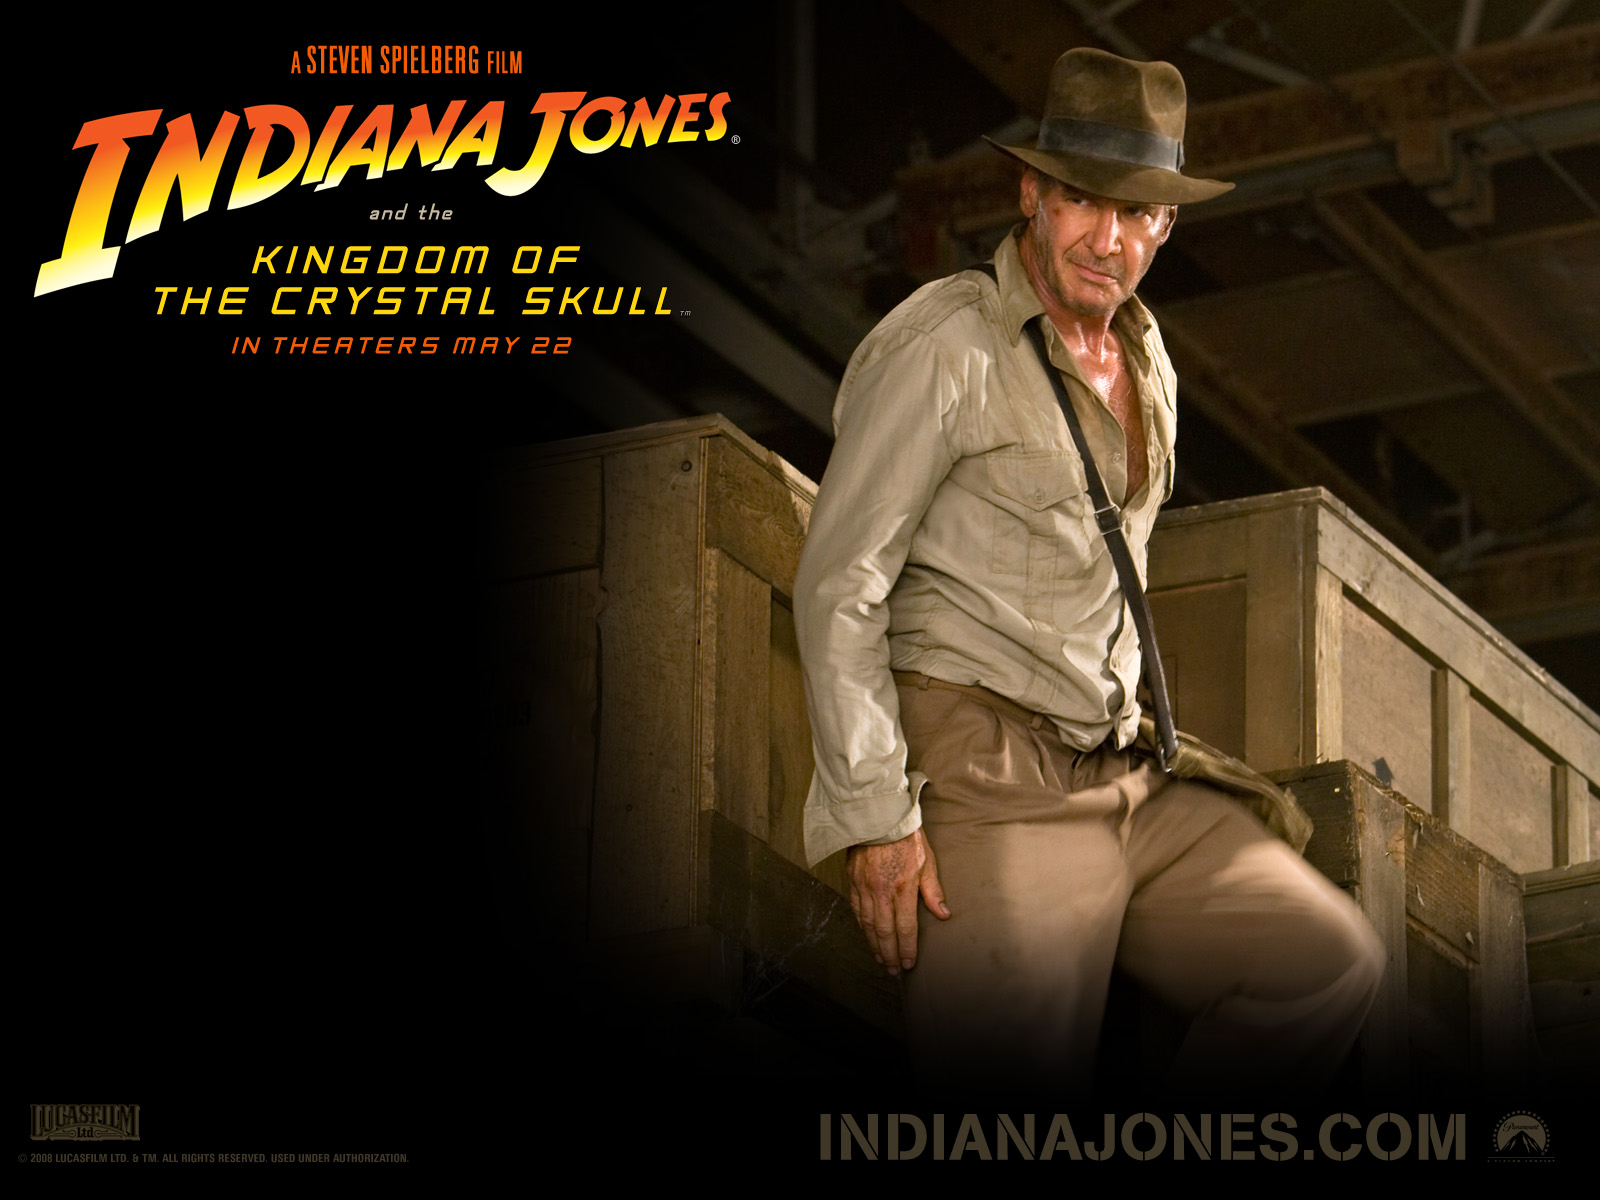 Pictures Indiana Jones Indiana Jones and the Kingdom of the Crystal Skull Movies film